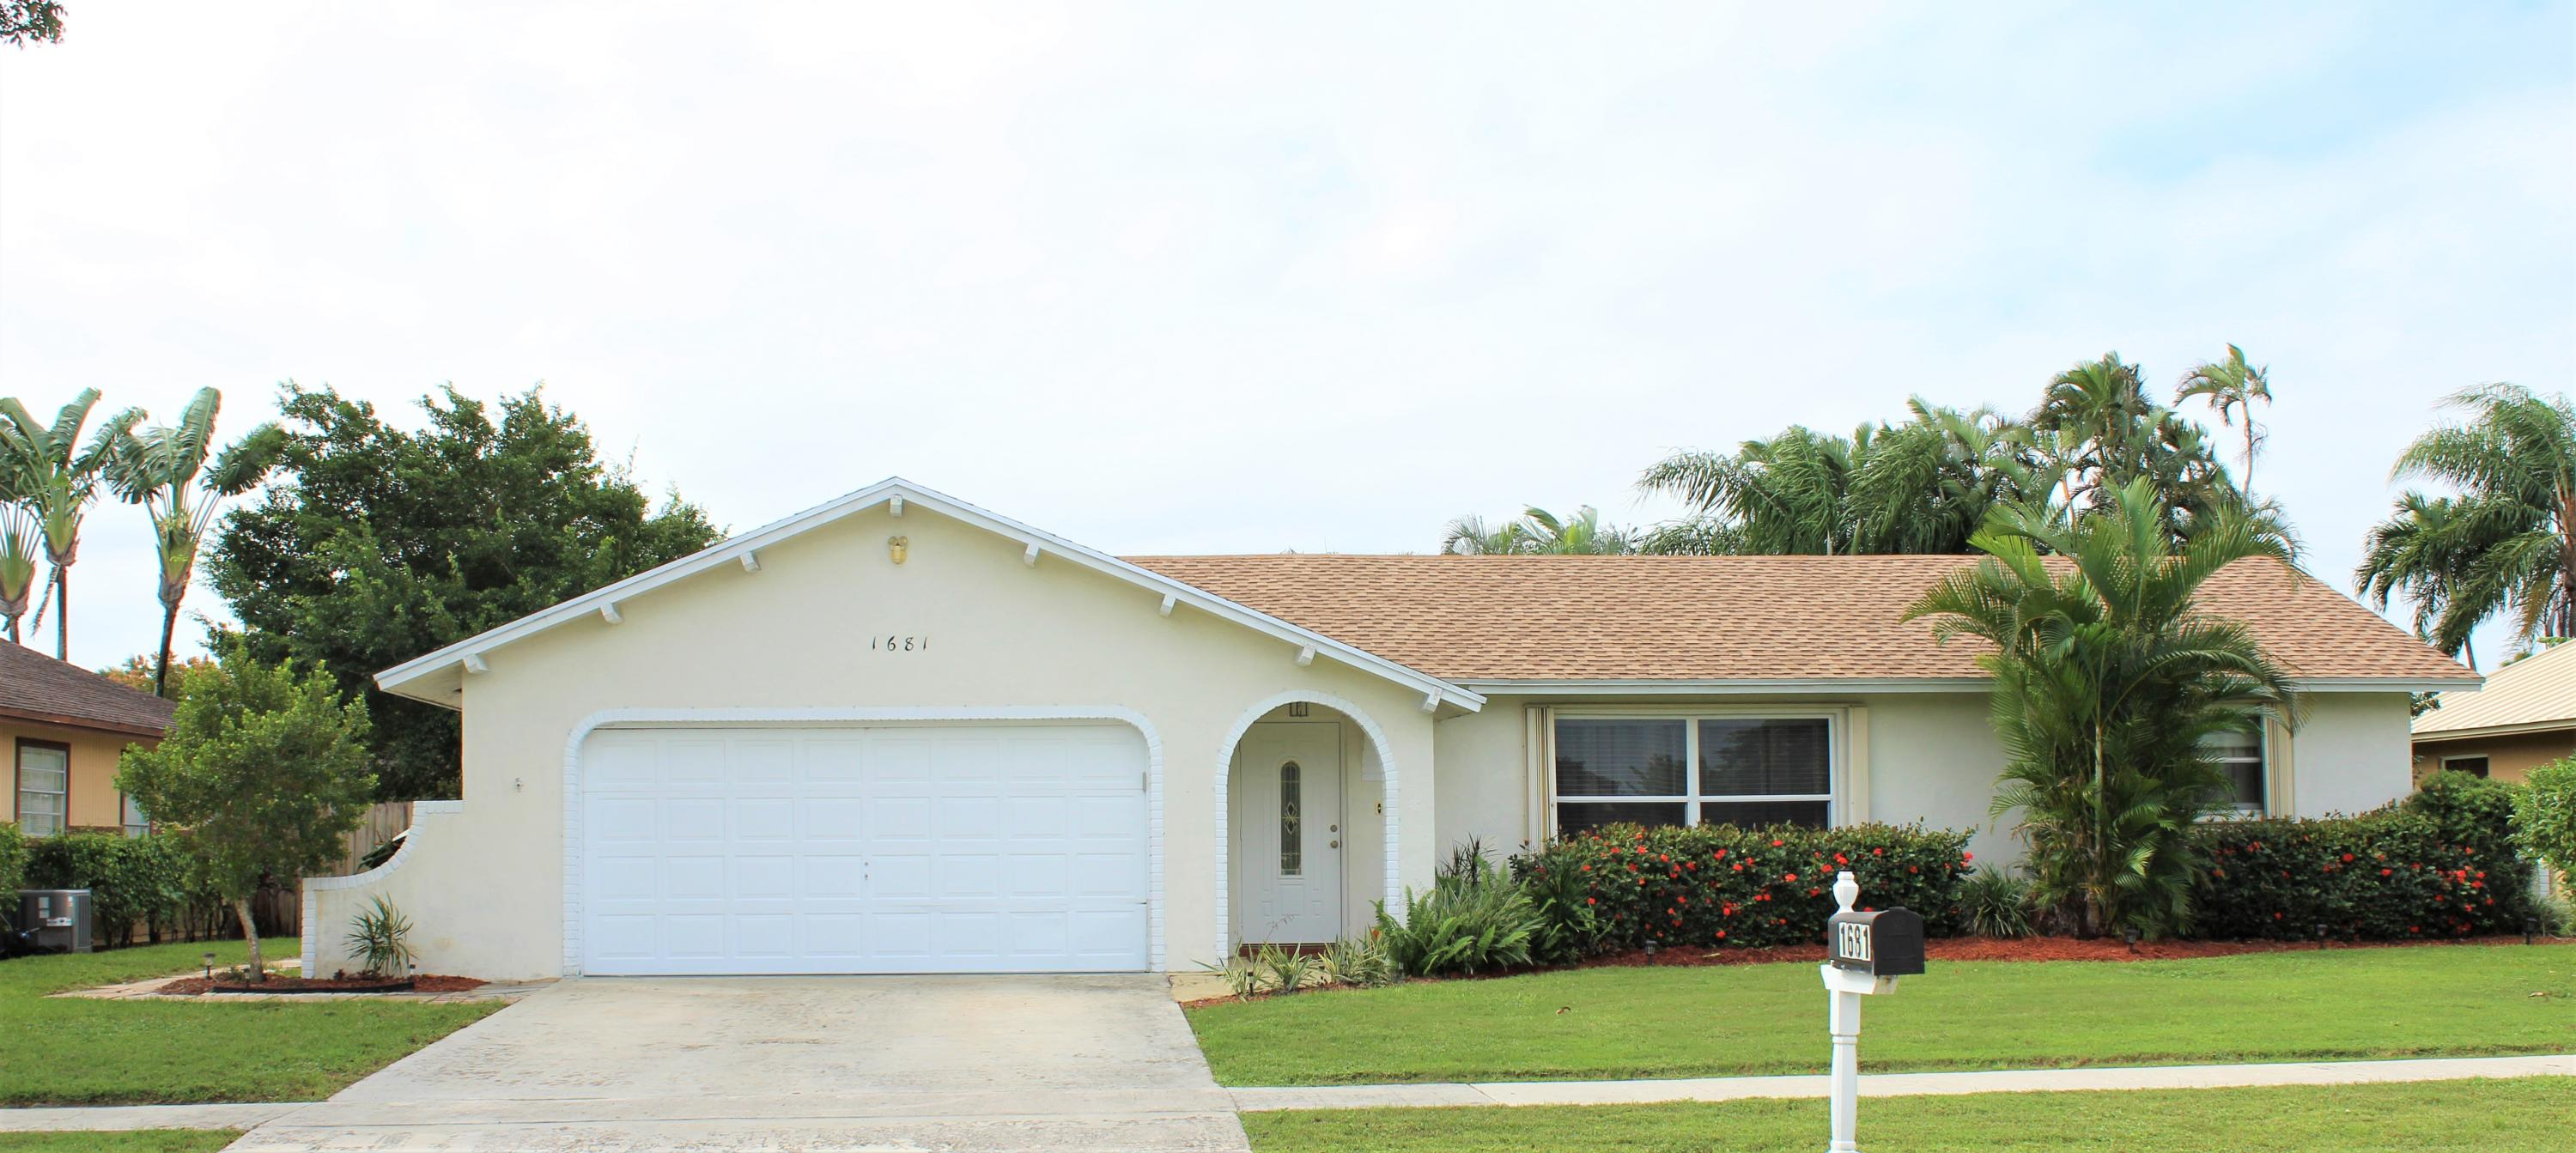 1681  Wyndcliff Drive  For Sale 10670029, FL